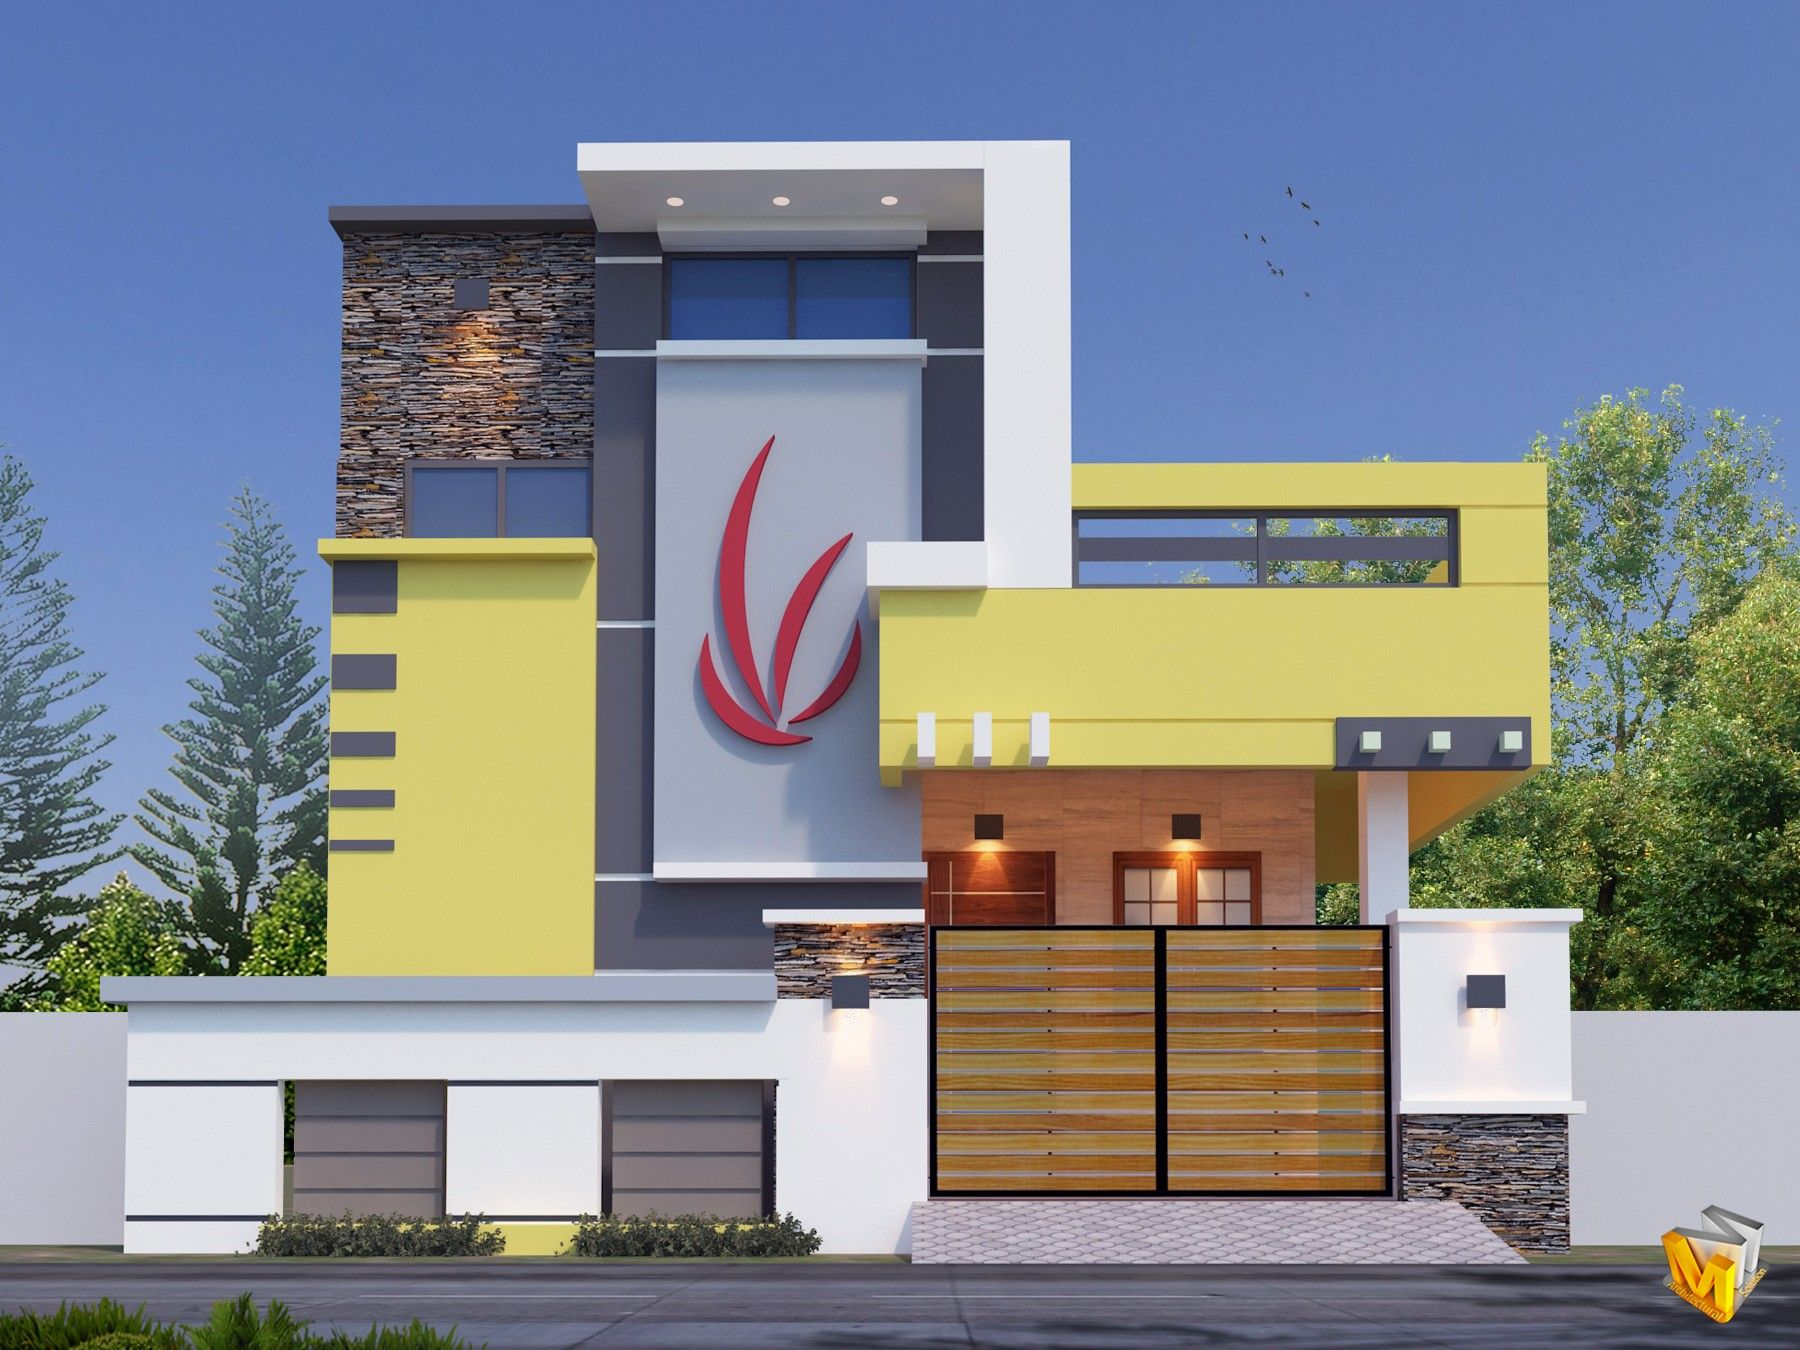 Pin By Rd Verma On Architecture Elevation Small House Elevation Design Small House Elevation Modern House Exterior